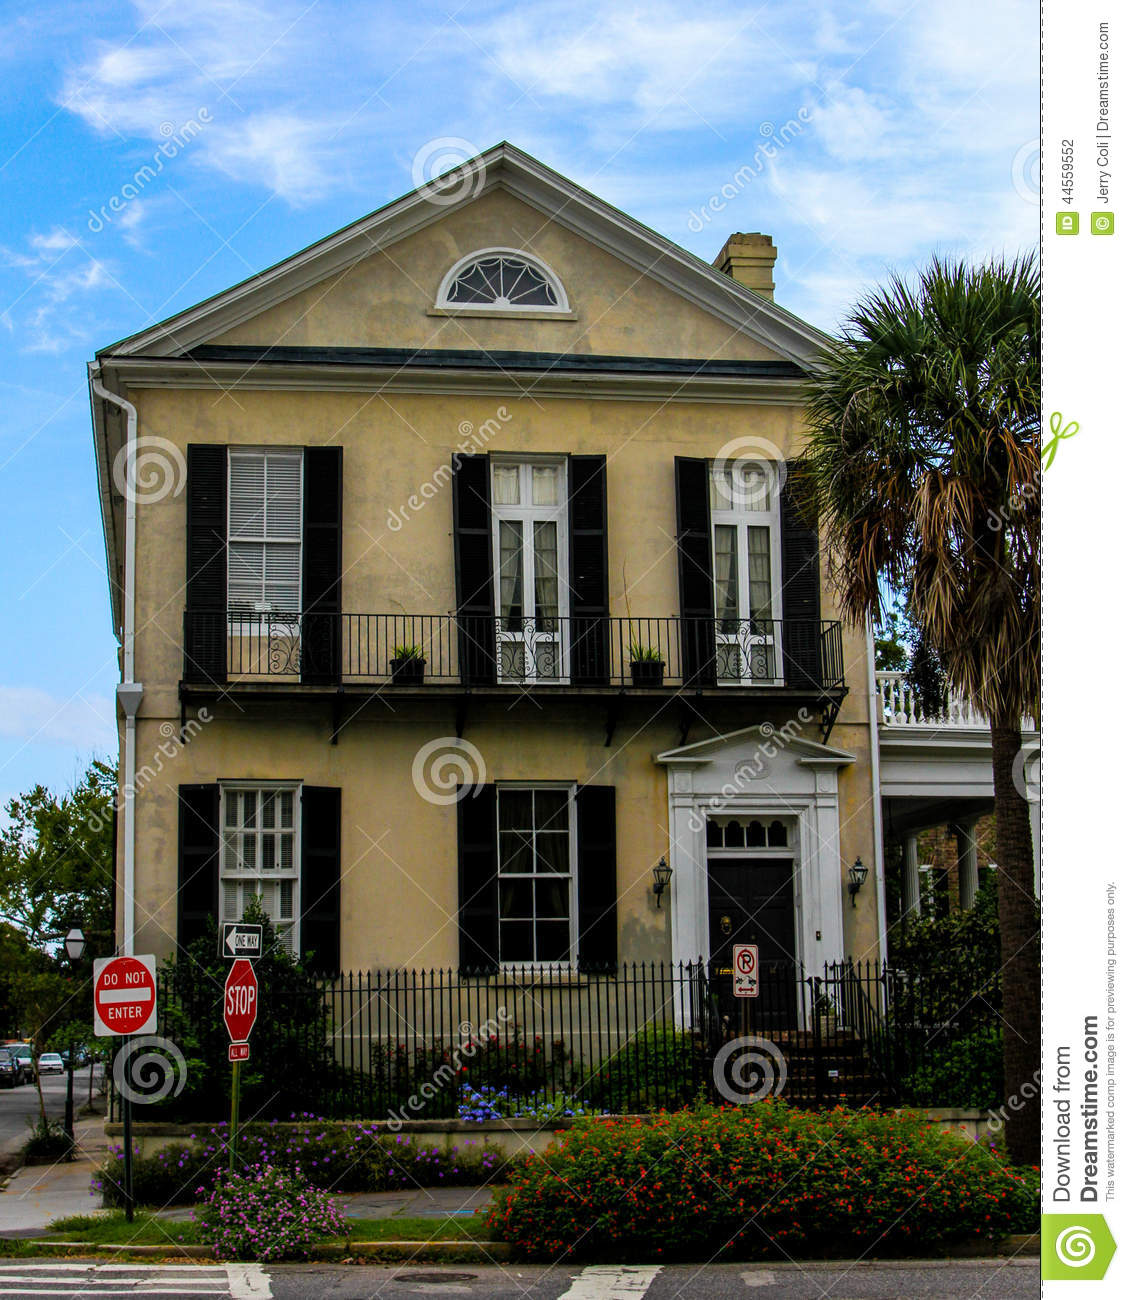 Charleston Sc Homes: One Of The Truly Beautiful Southern Style Homes In